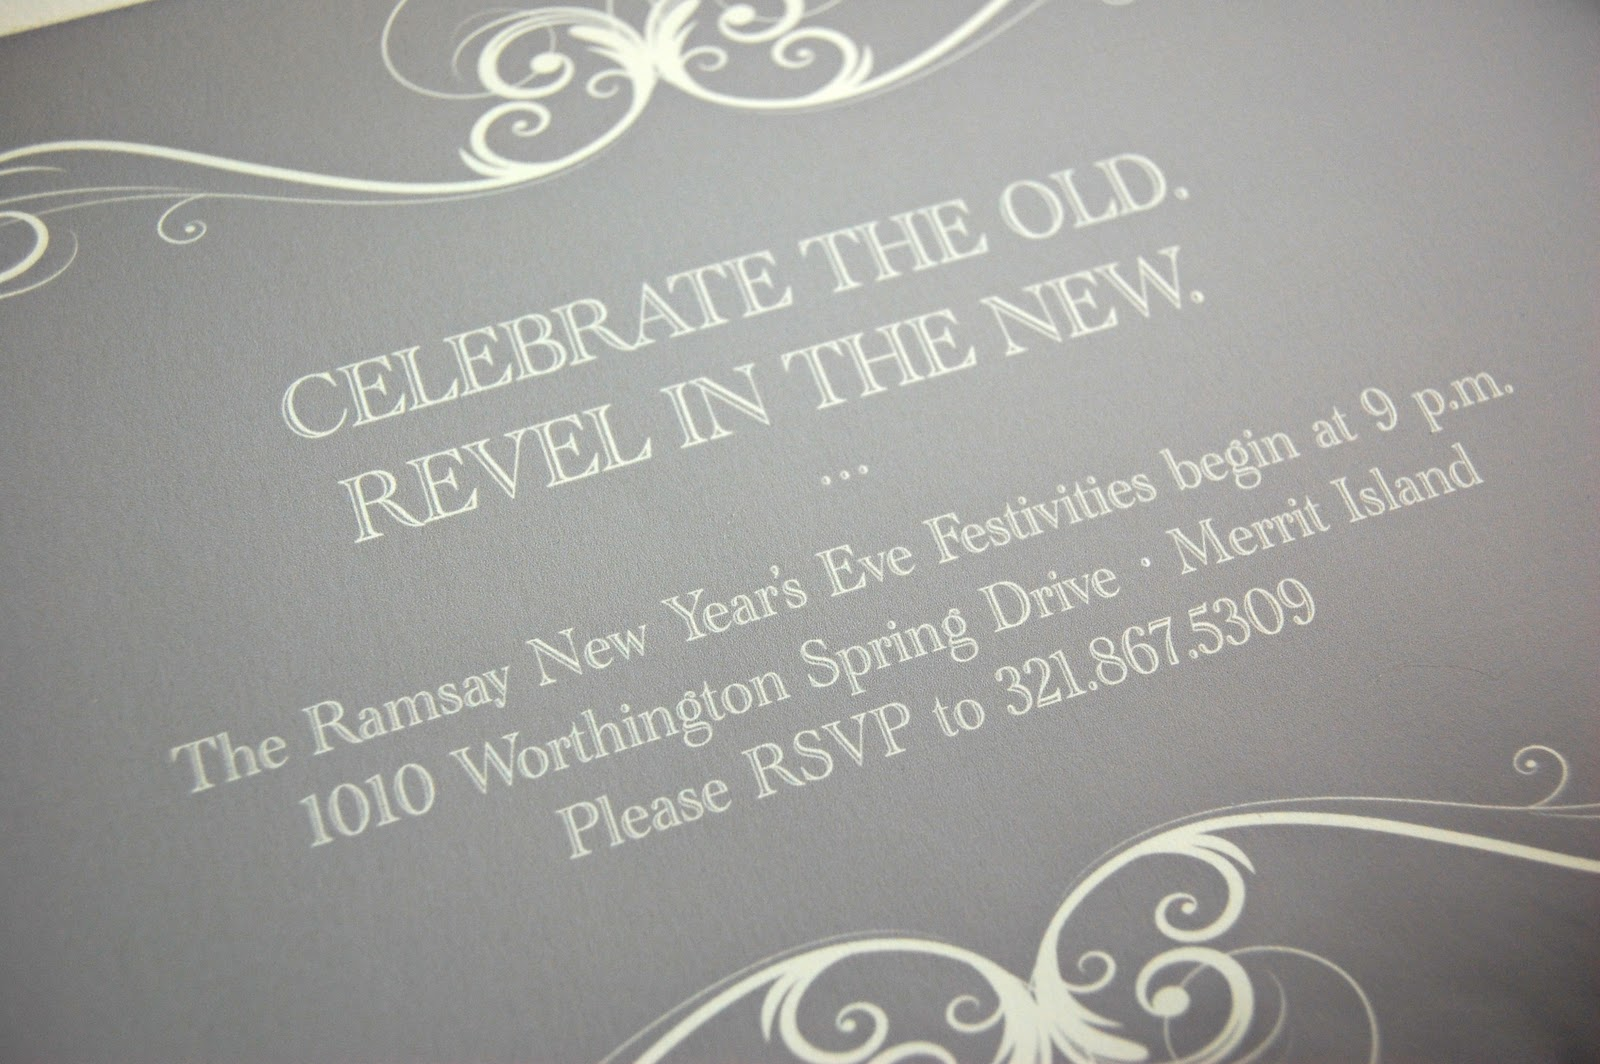 http://3.bp.blogspot.com/-1nEGexibUF8/Tv5r7i3JjVI/AAAAAAAABM8/FRz0grq9OuI/s1600/new-years-eve-invitation-inside-closeup.jpg